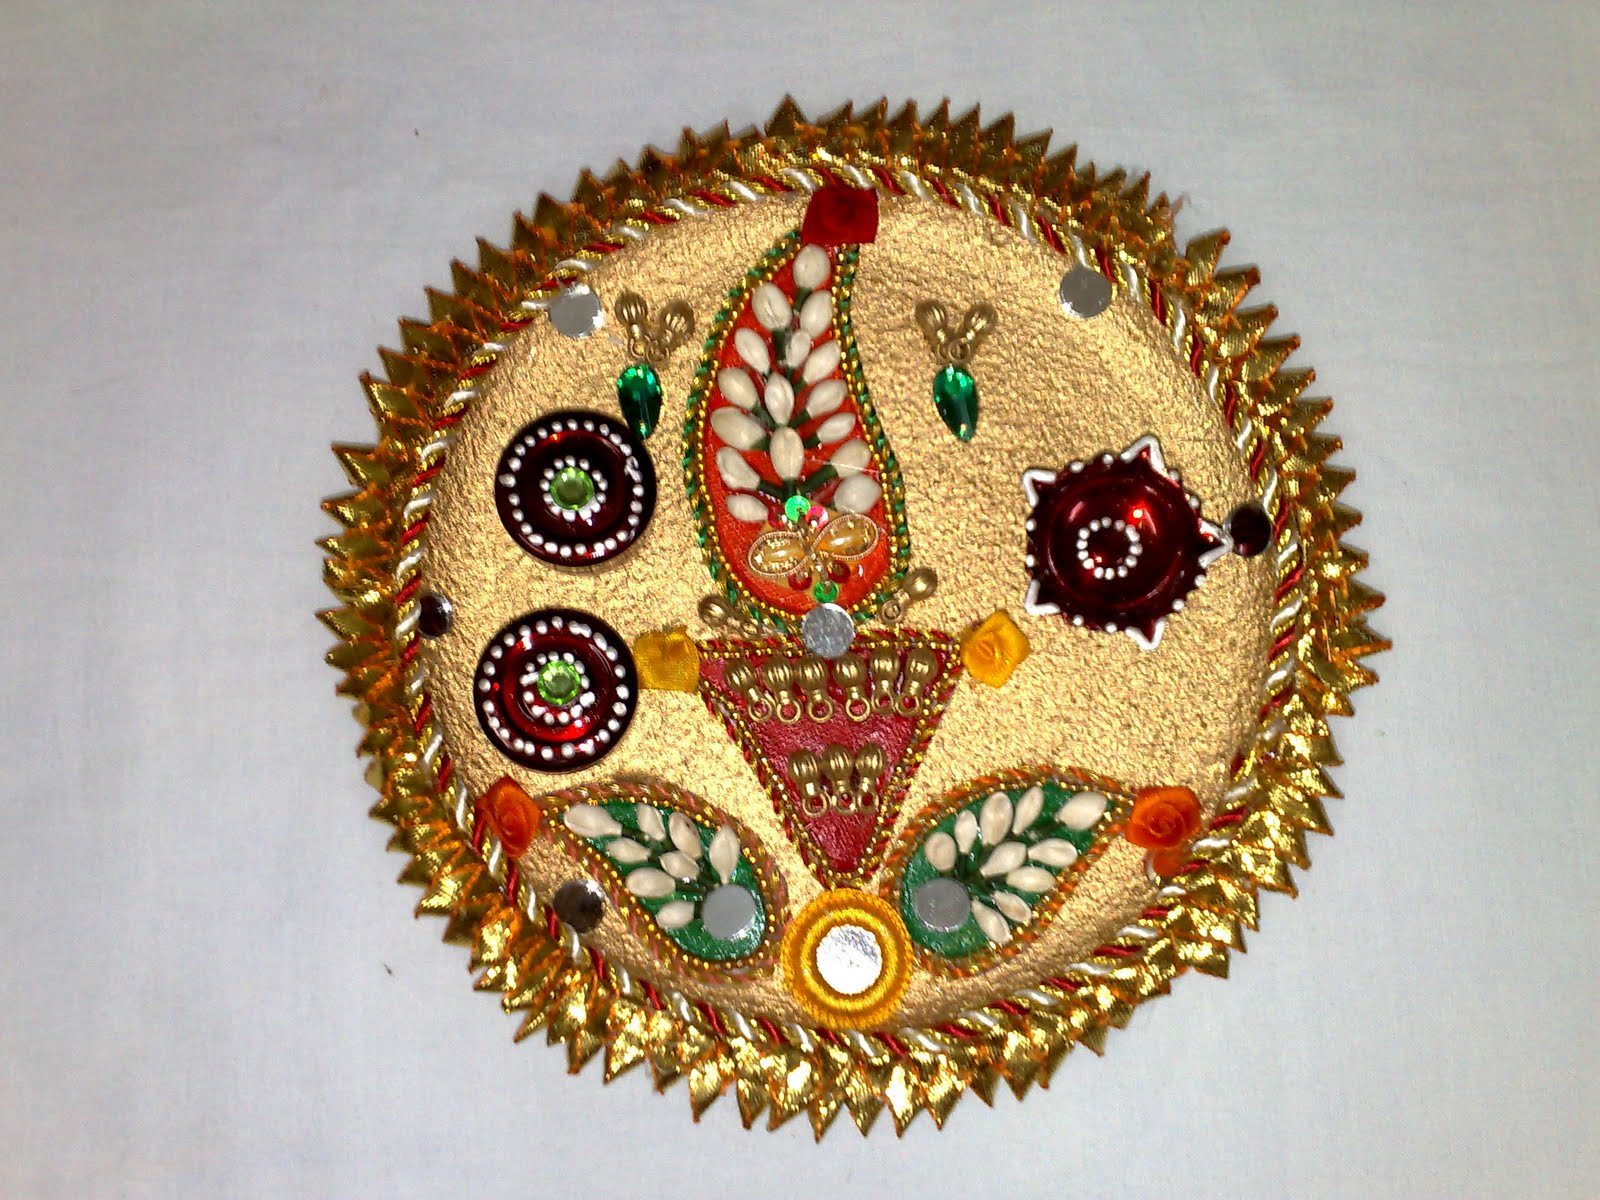 Ranjana arts www ranjanaarts com aarti thali 2011 new for Aarti thali decoration with flowers